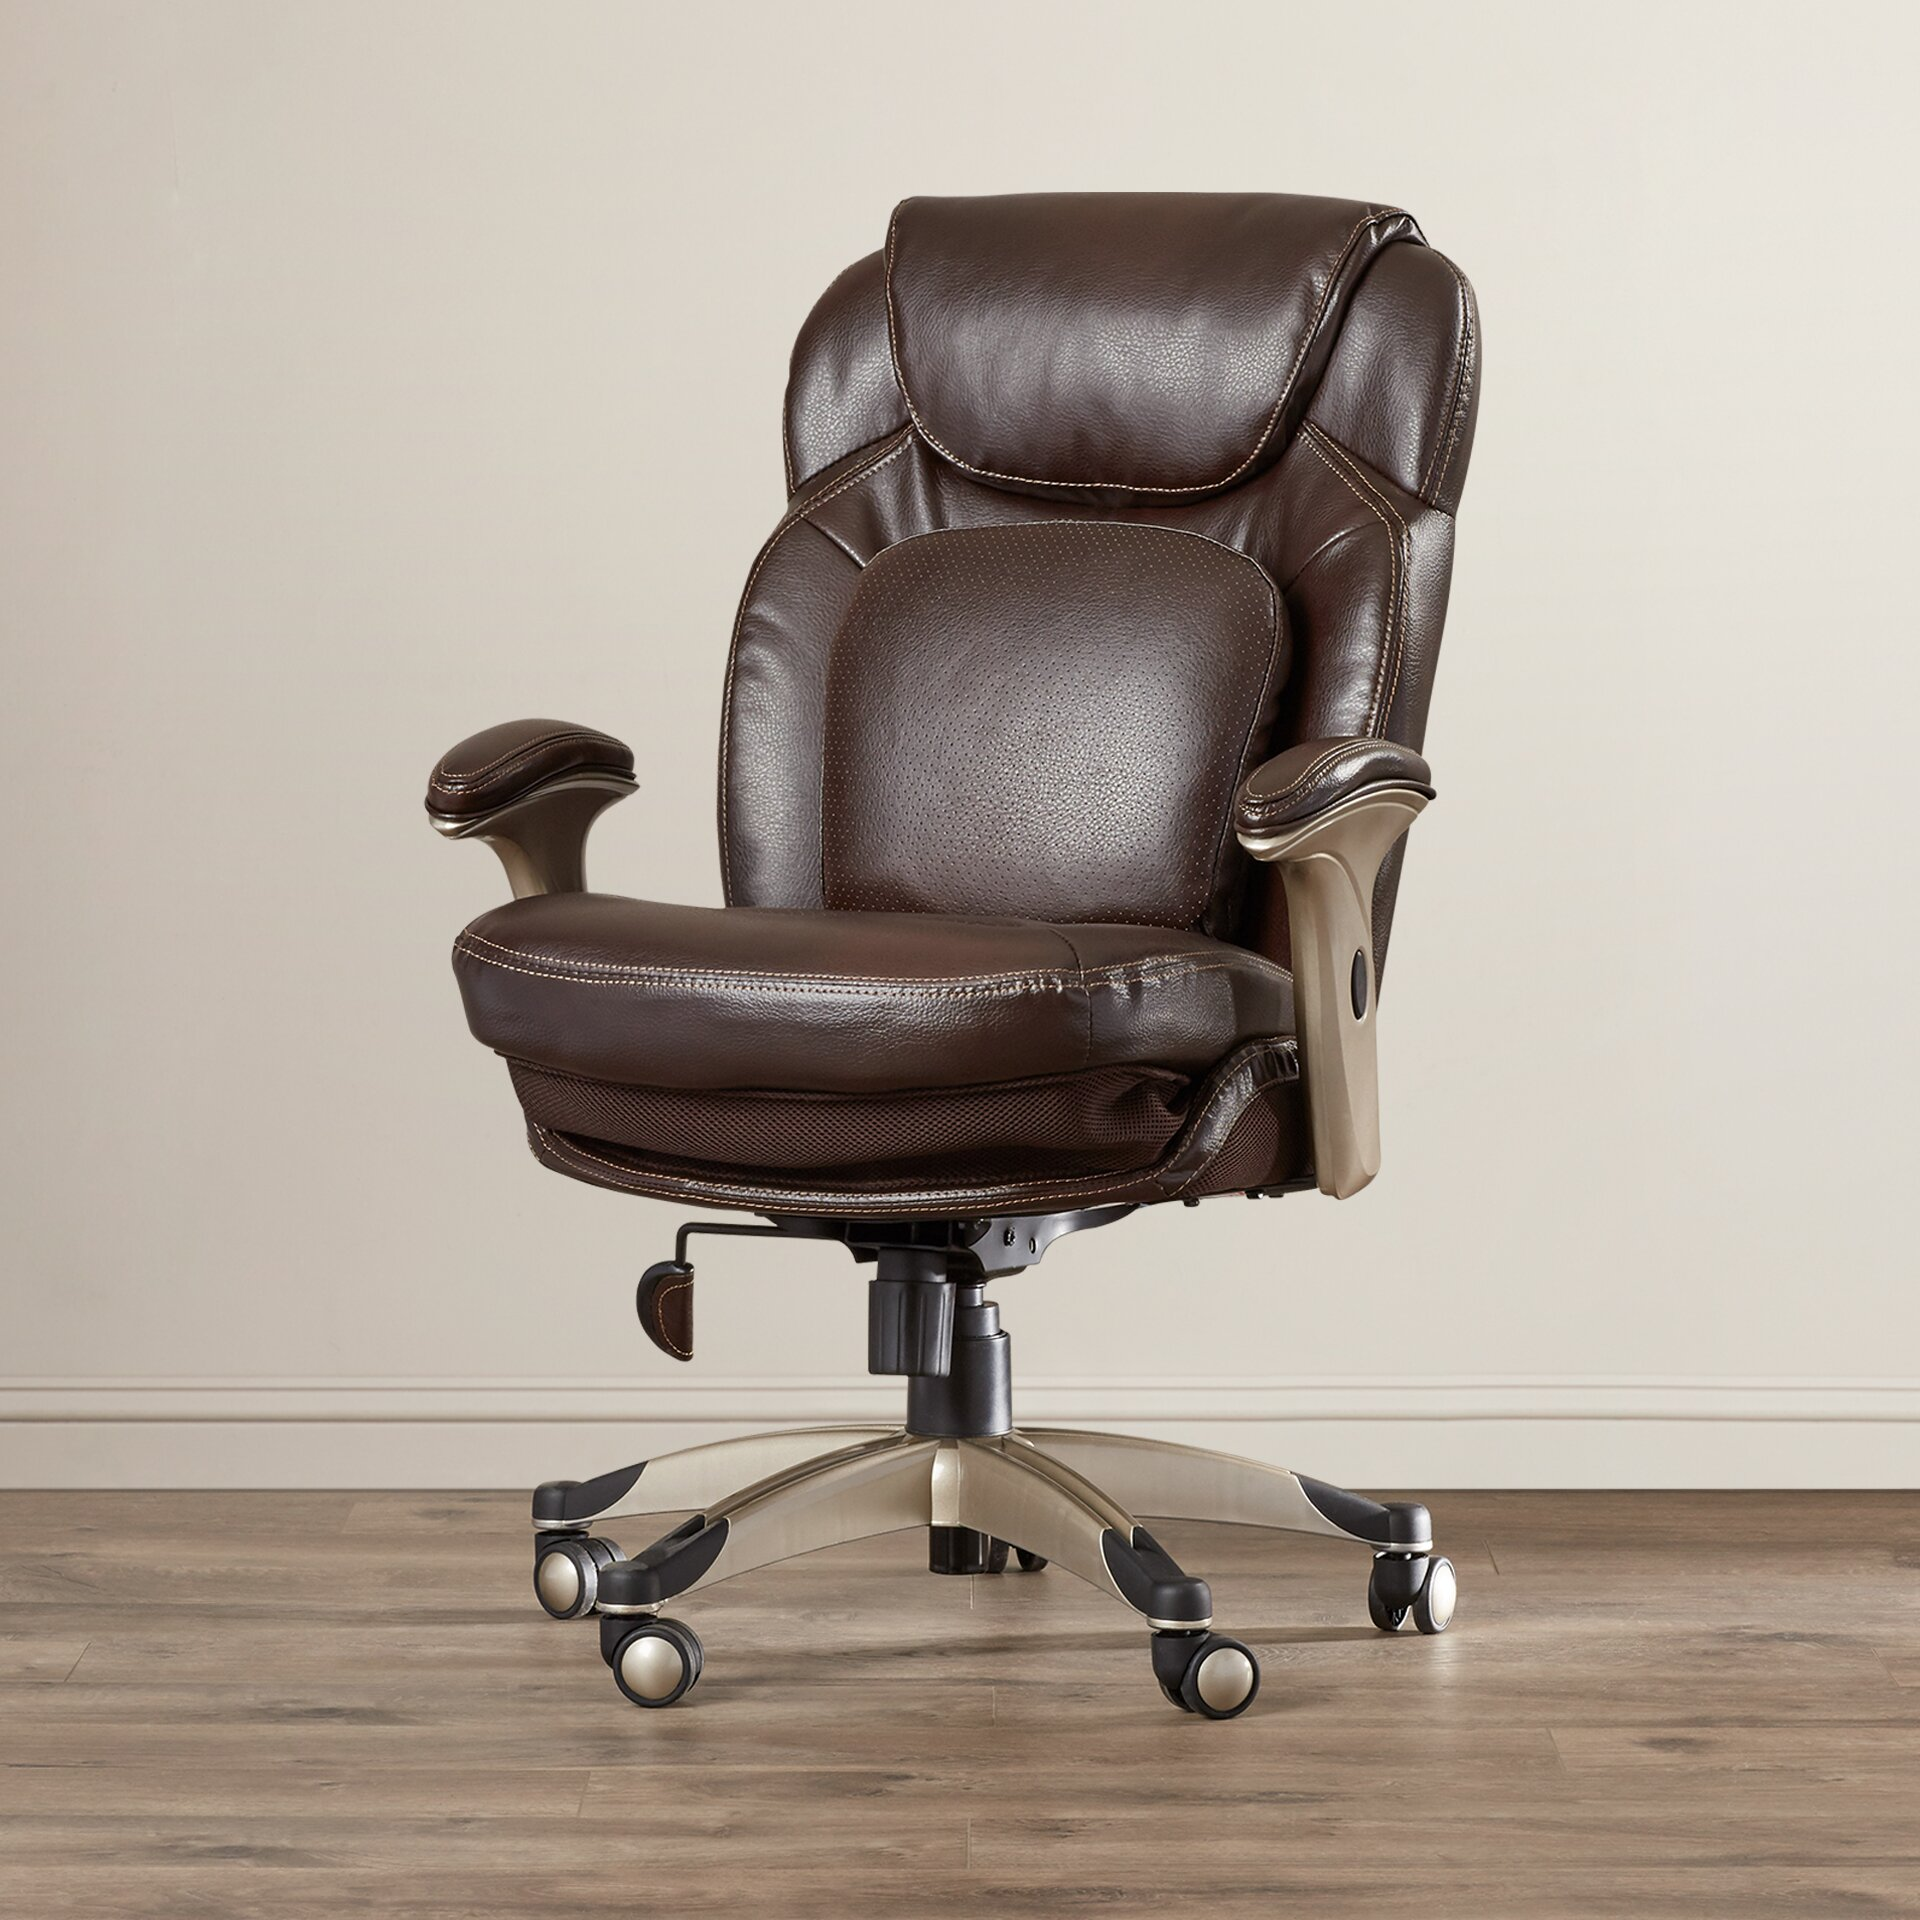 serta at home back in health and wellness midback desk chair - Serta Executive Office Chair